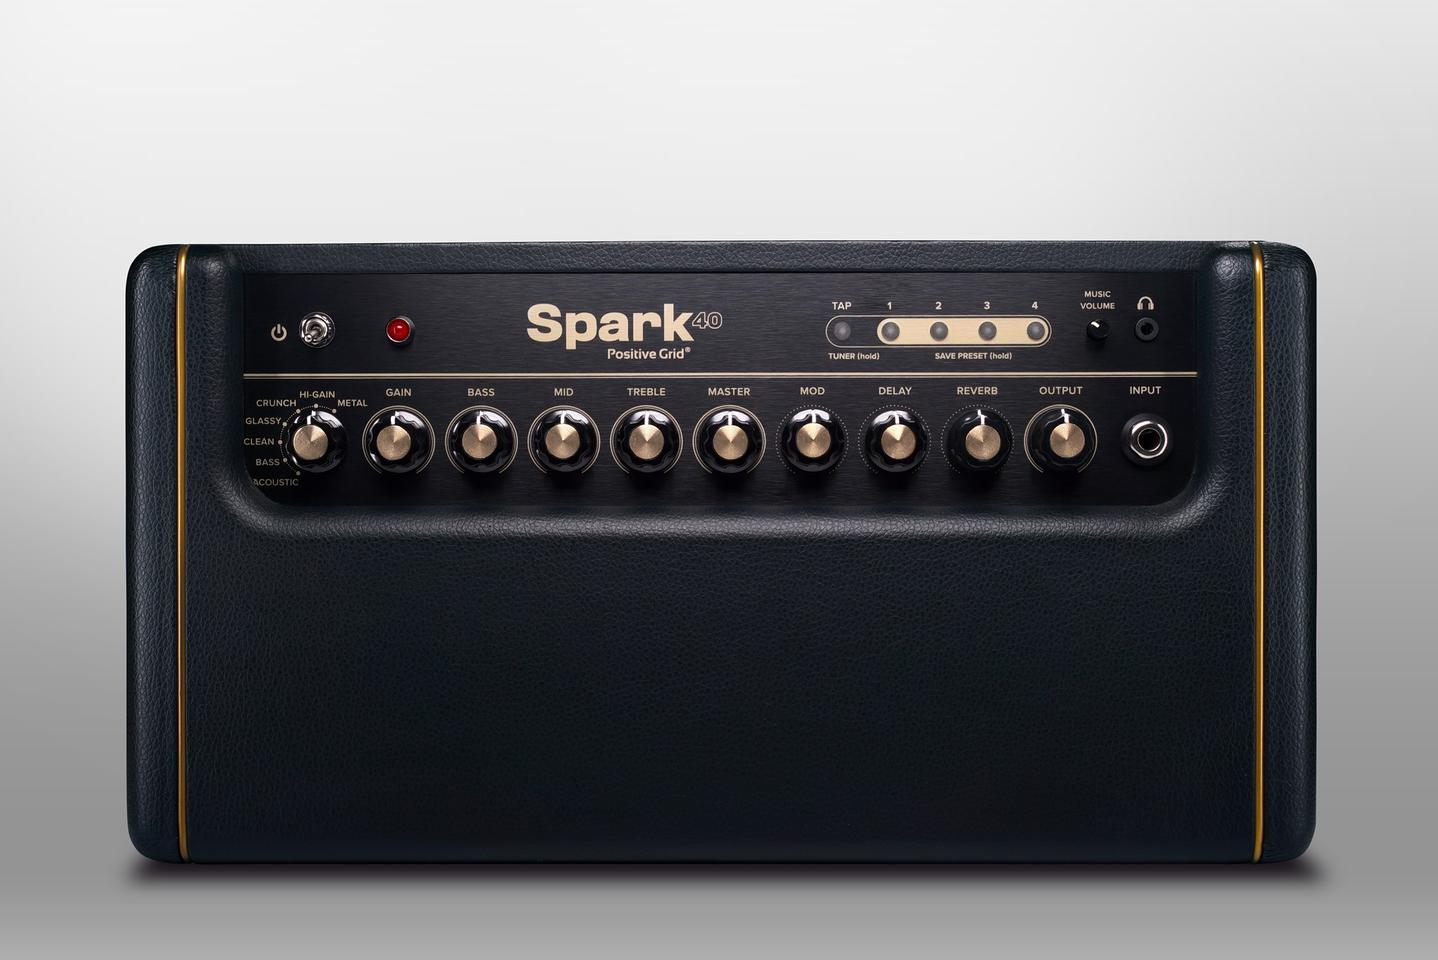 The top of the Spark offers a series of knobs and some buttons – most of these are overridden by commands in the app when you're connected to a device